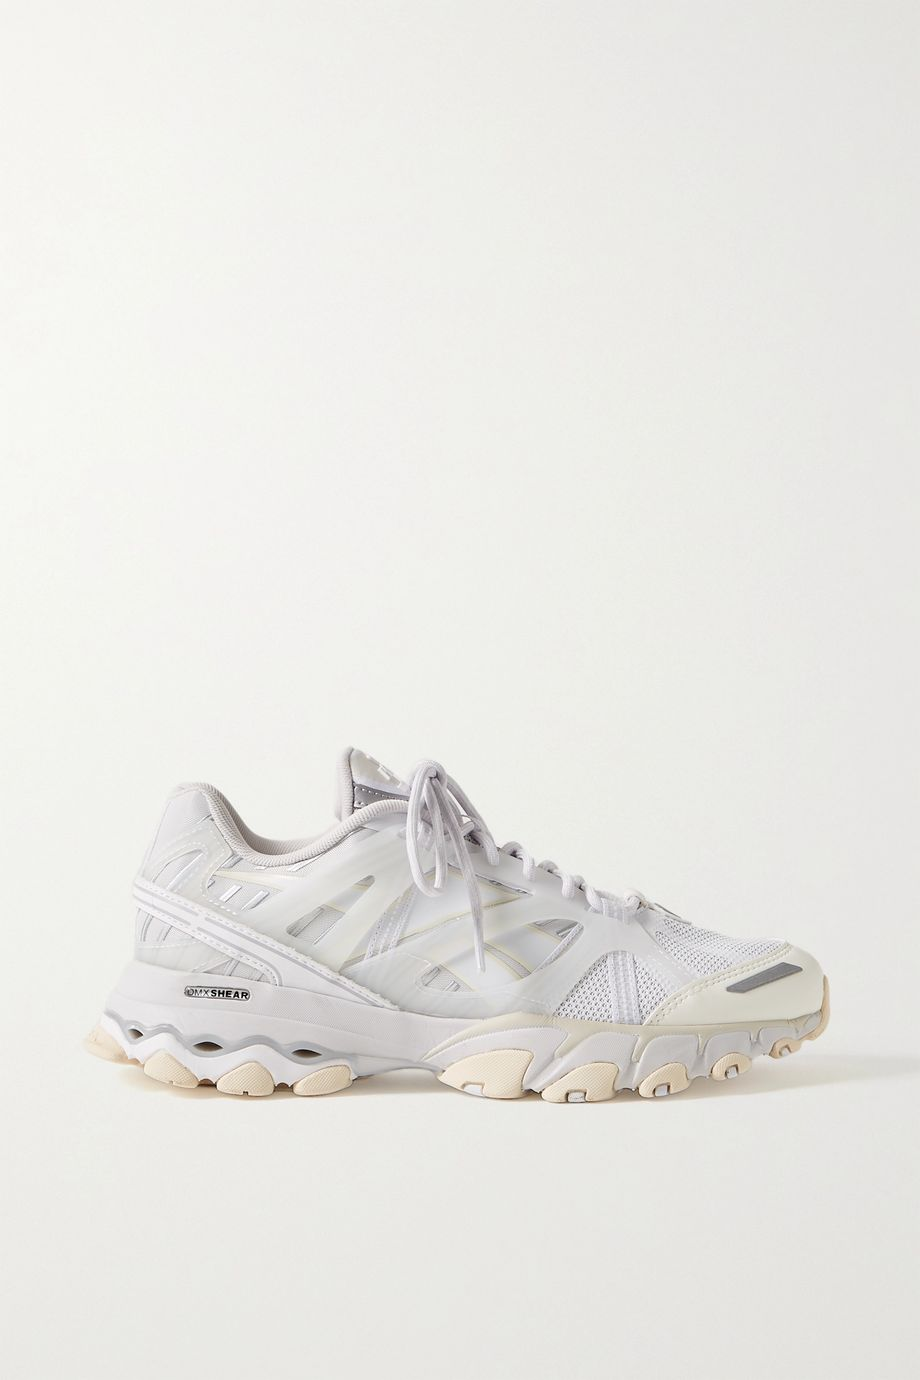 Reebok DMX Trail Shadow mesh, leather and rubber sneakers